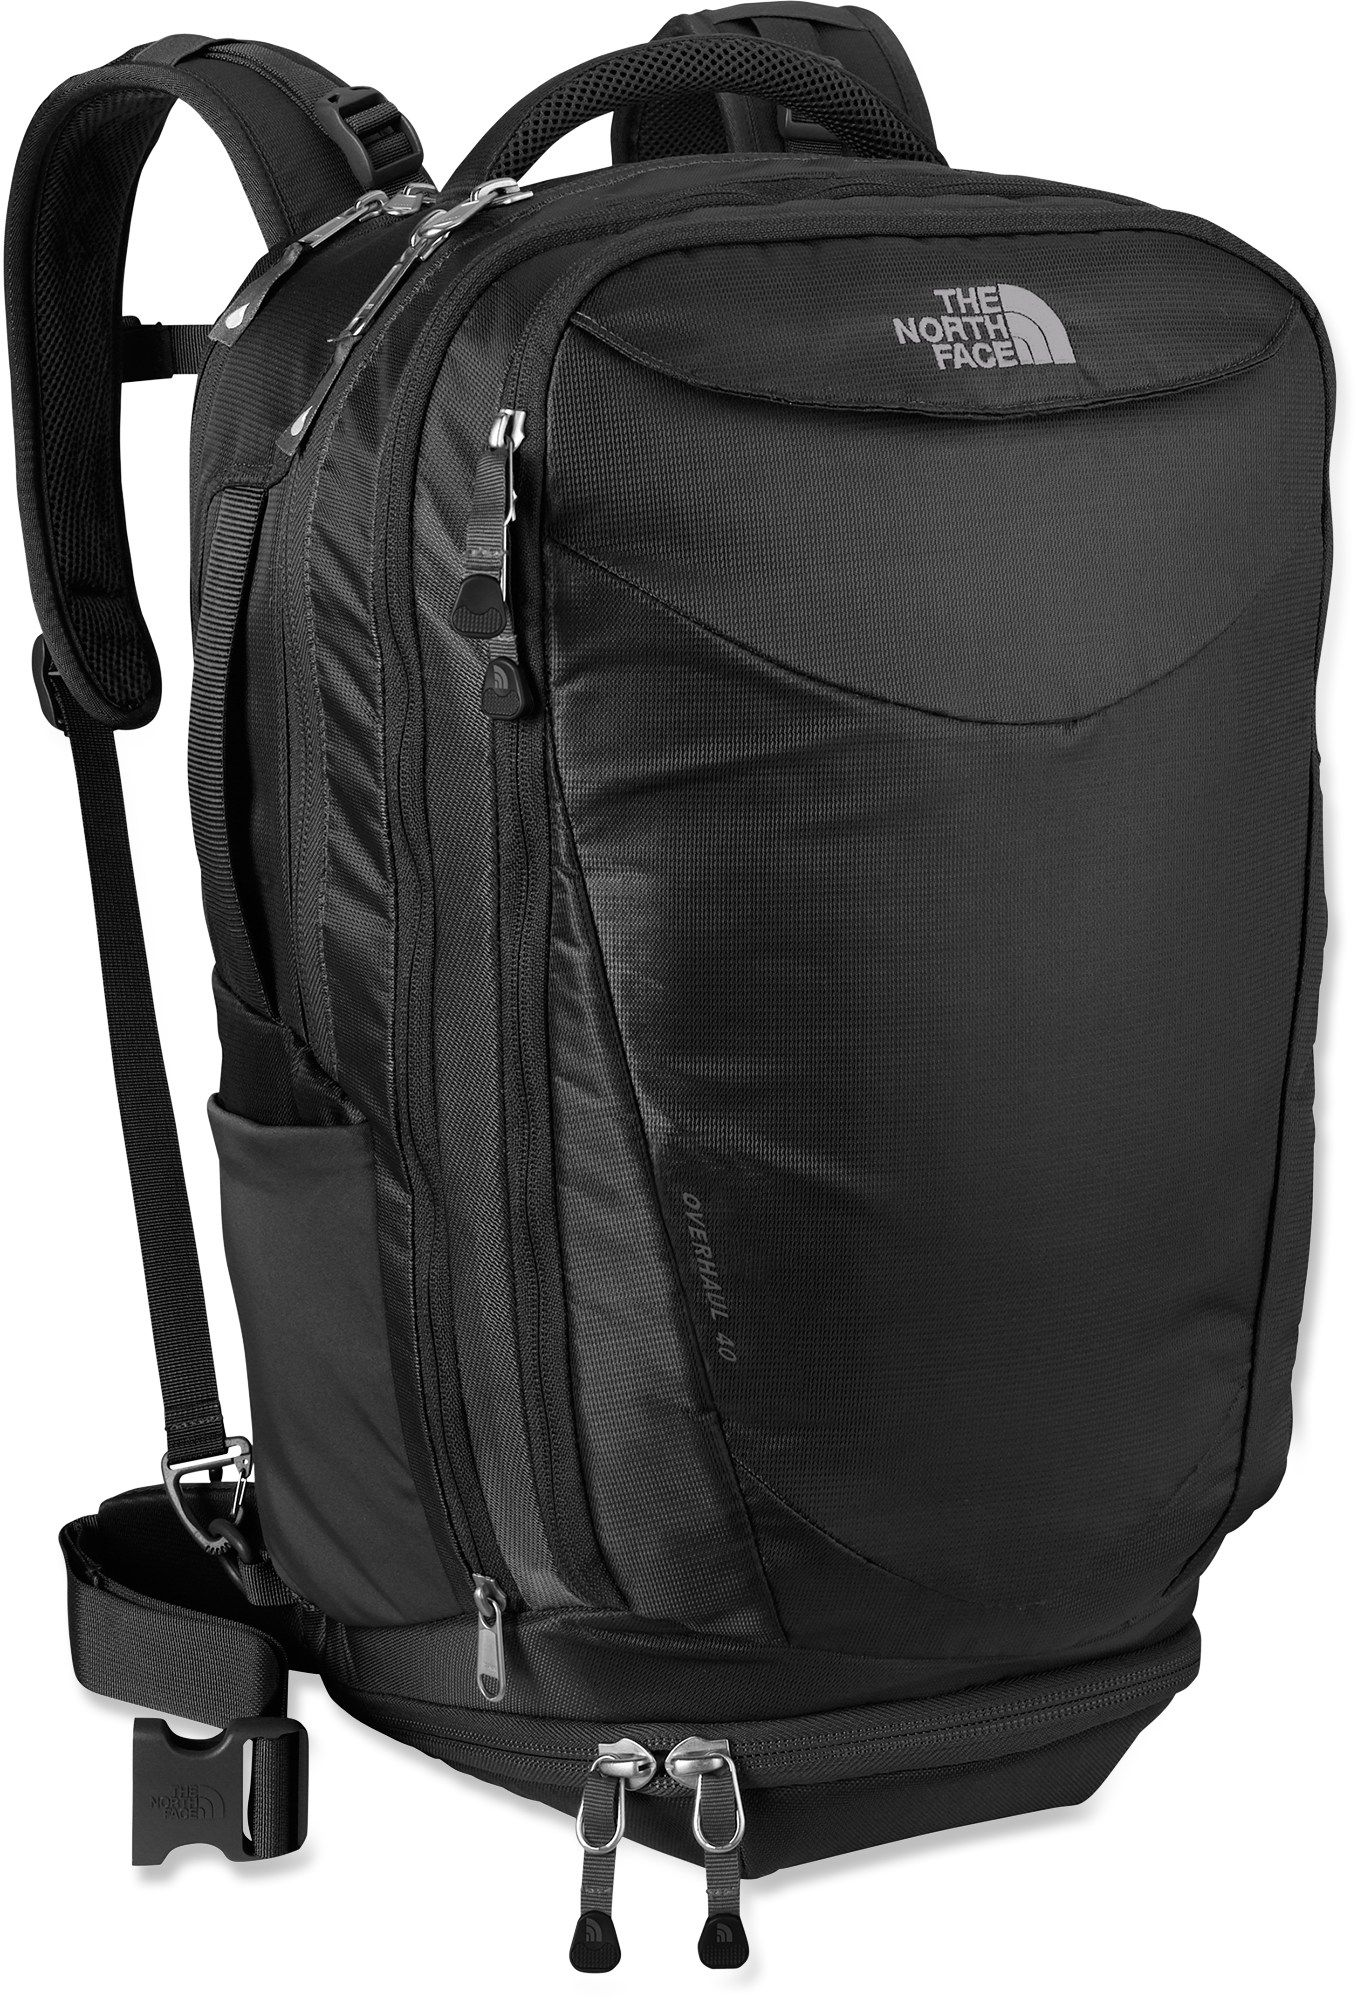 The North Face Overhaul 40 Laptop Pack - Free Shipping at REI.com 7f5dc9ebede14